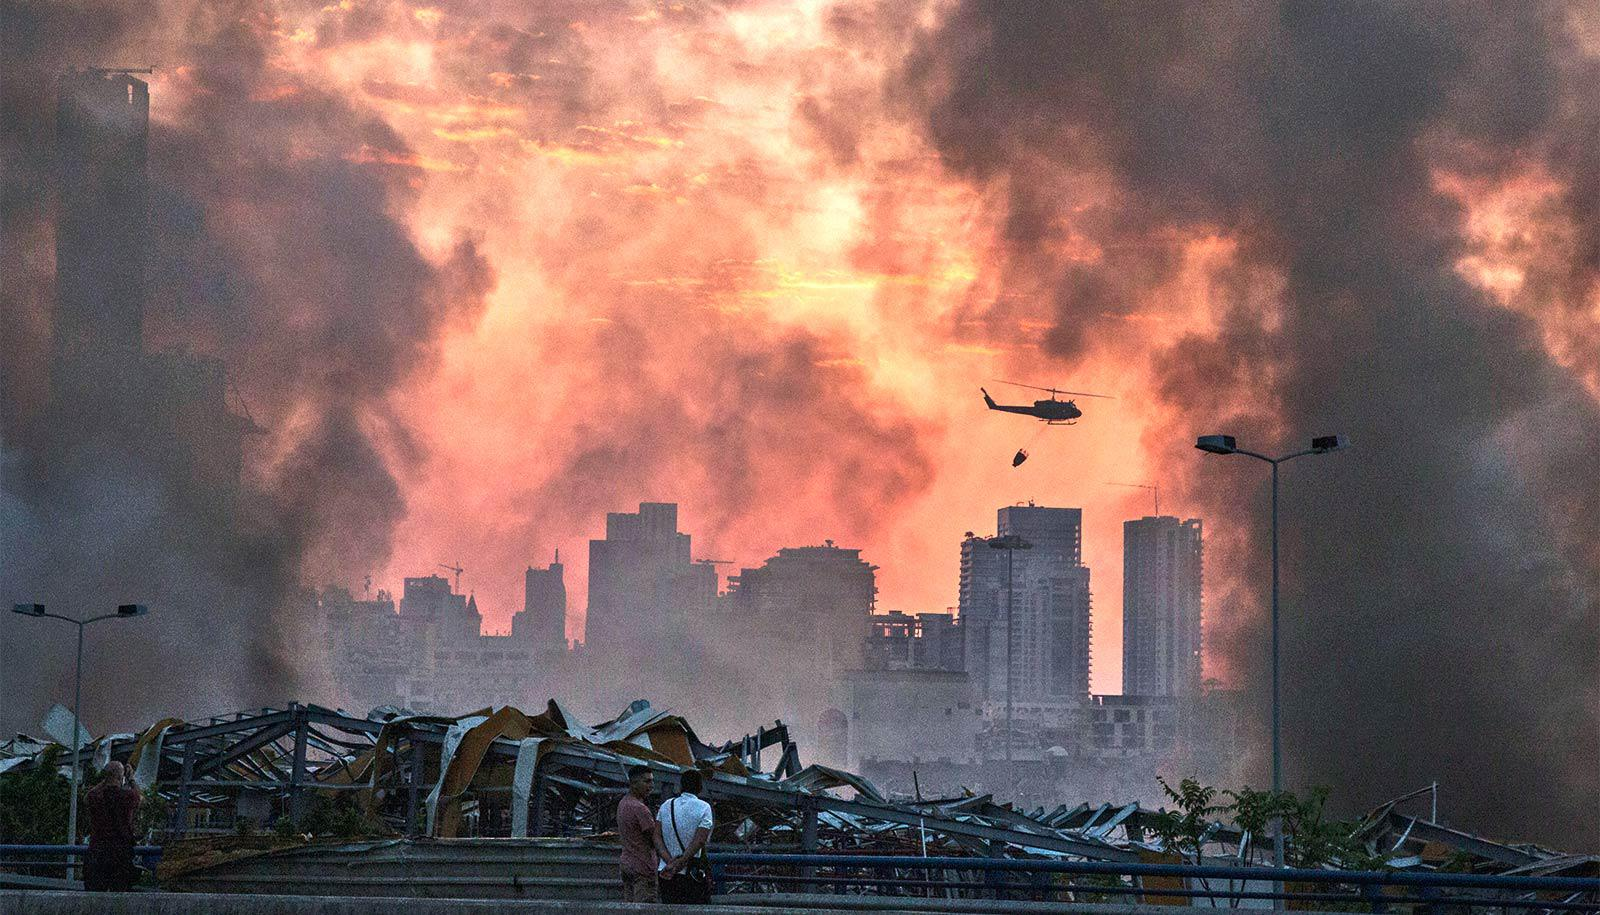 Helicopters fly over the site of the explosion as people look over wreckage and smoke billows into an orange sky